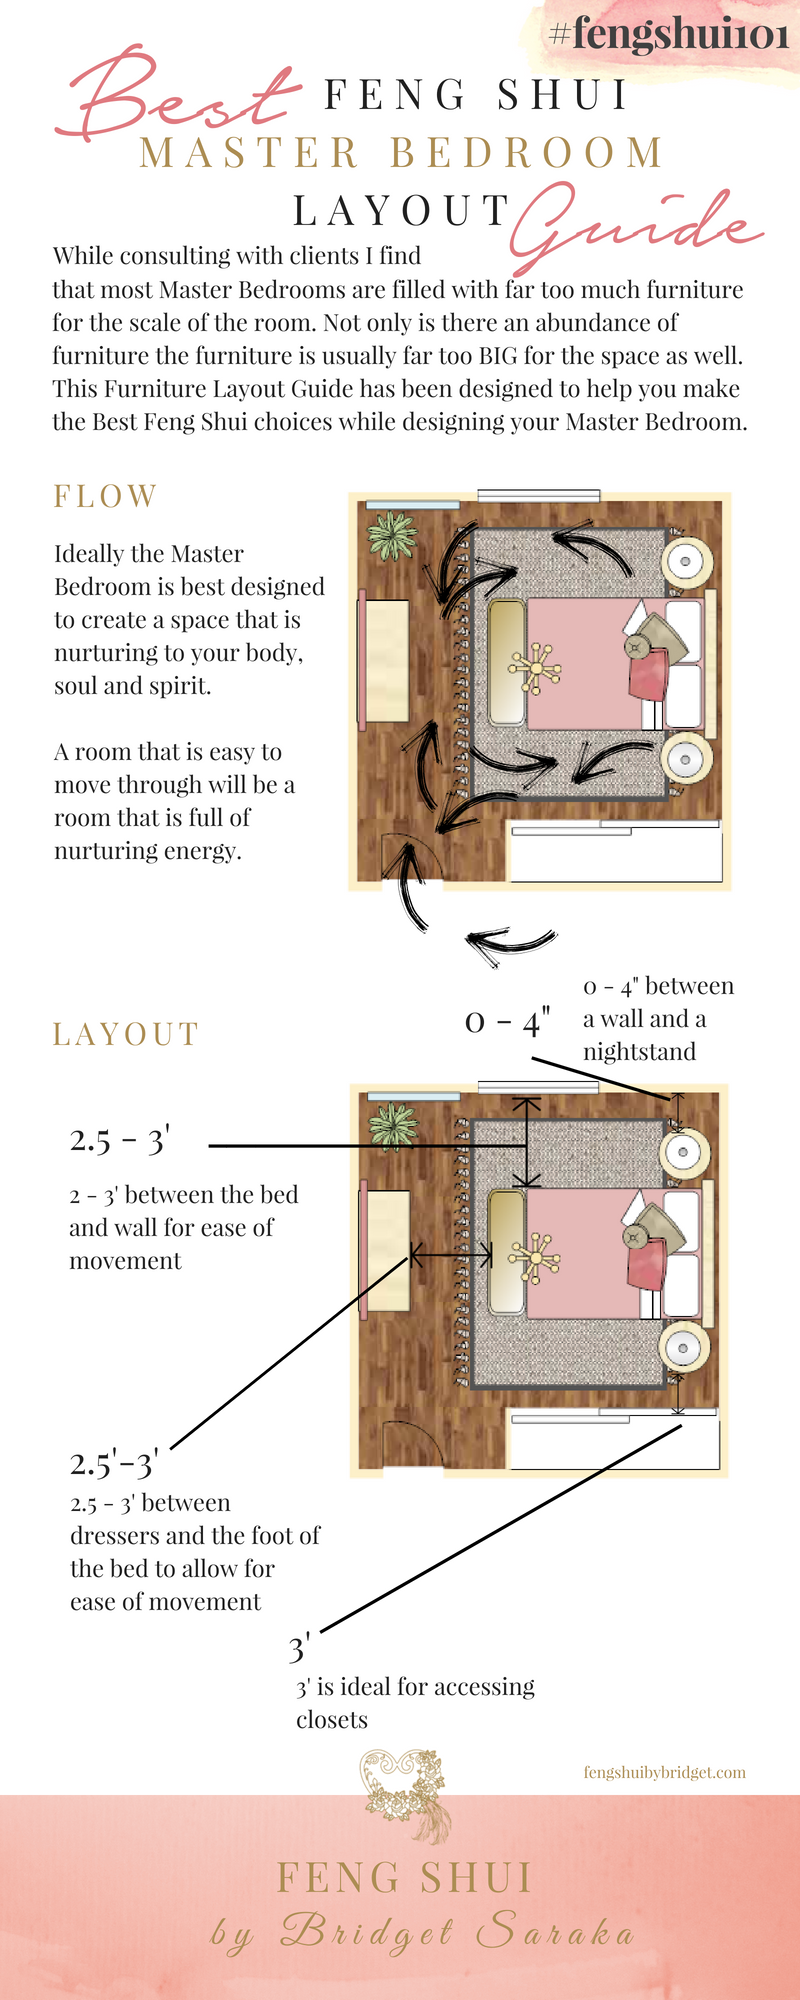 Best Feng Shui Master Bedroom Layout Guide #fengshui101 ...